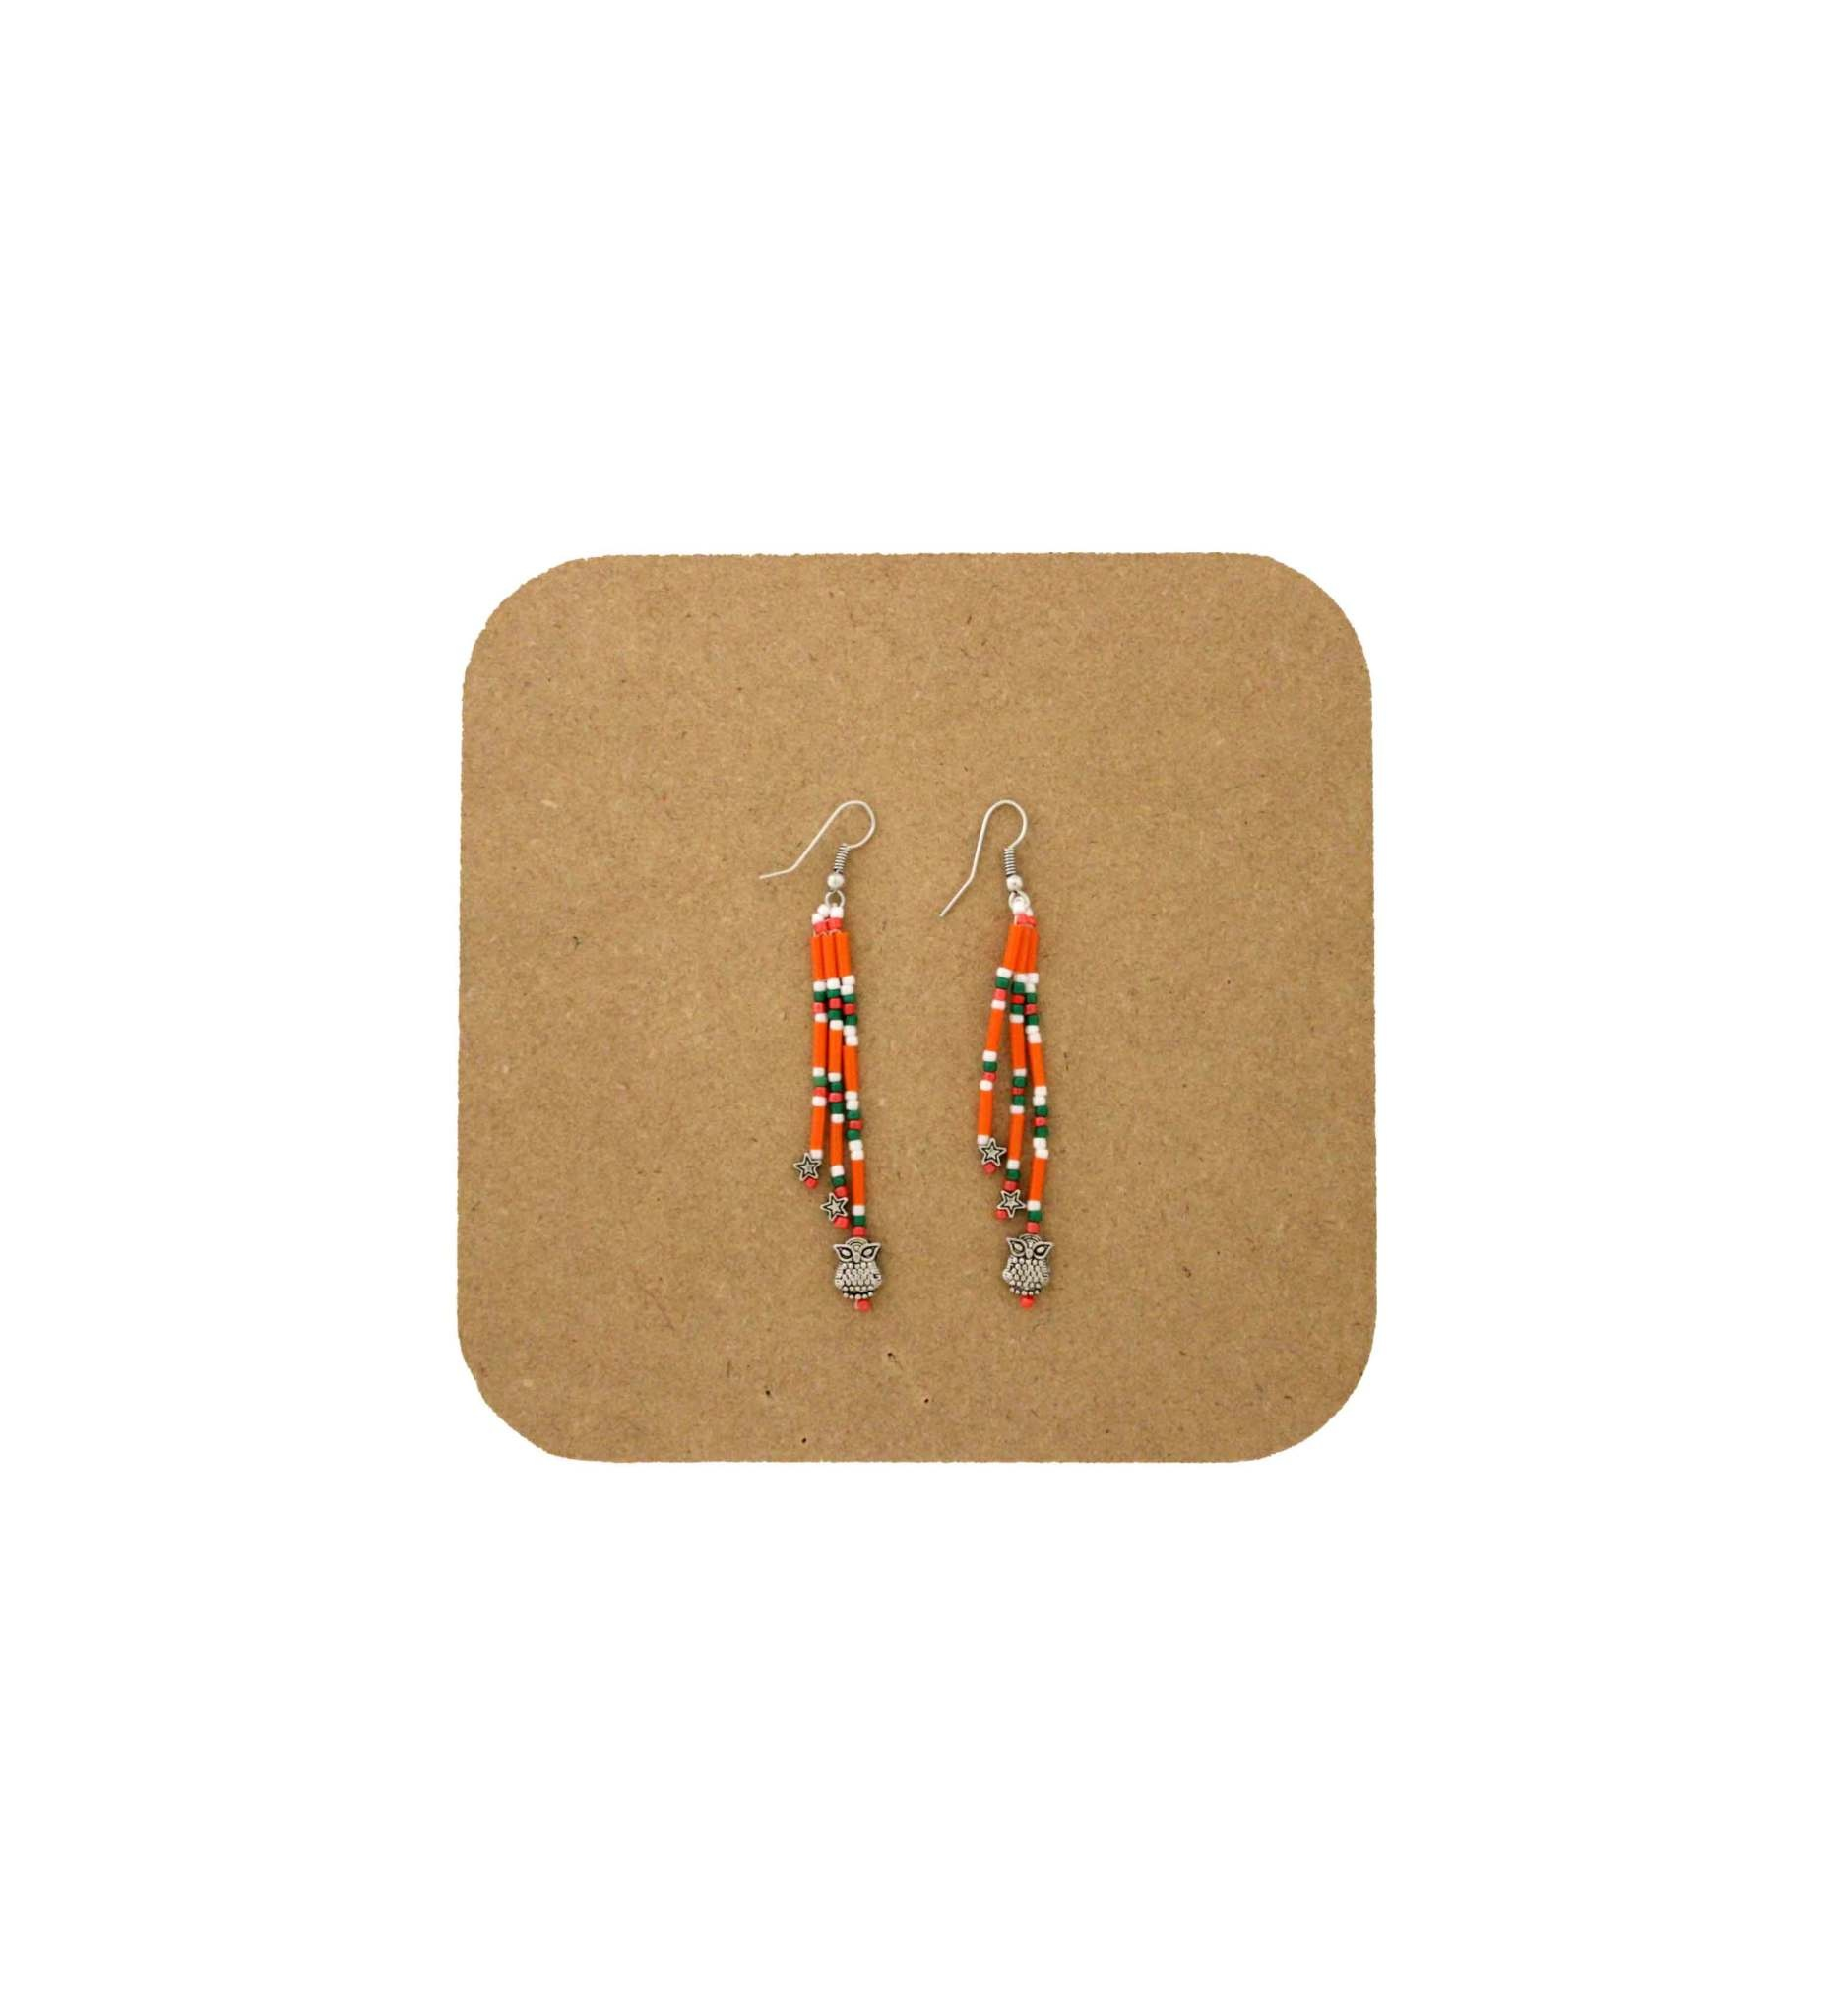 *AB 3002 BEADED EARRINGS